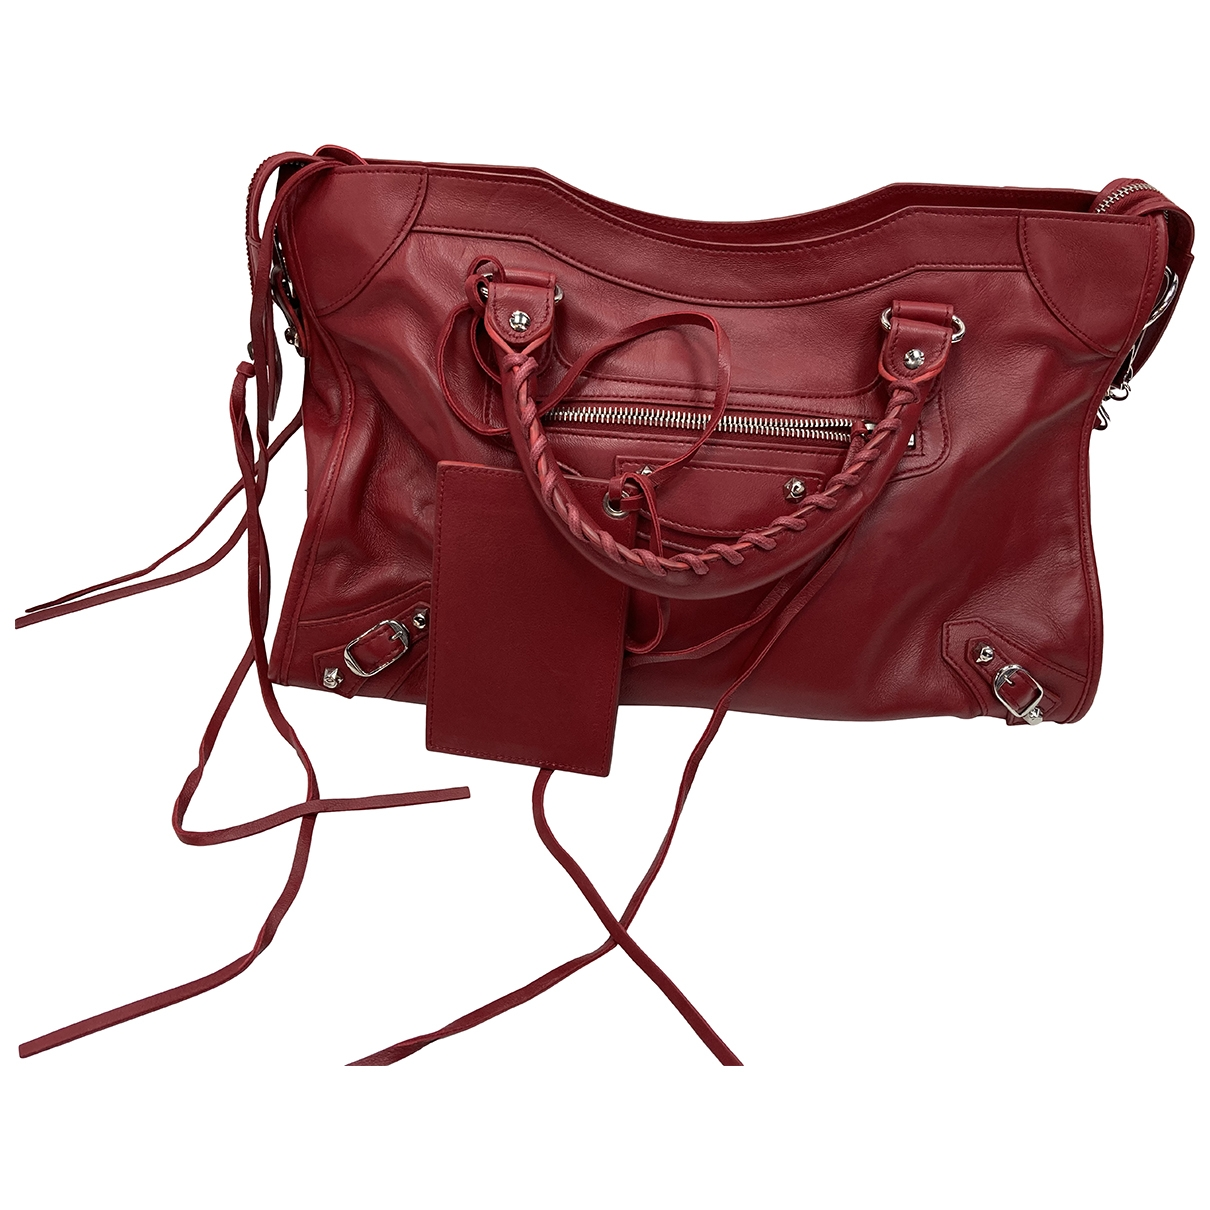 Balenciaga City Red Leather handbag for Women \N